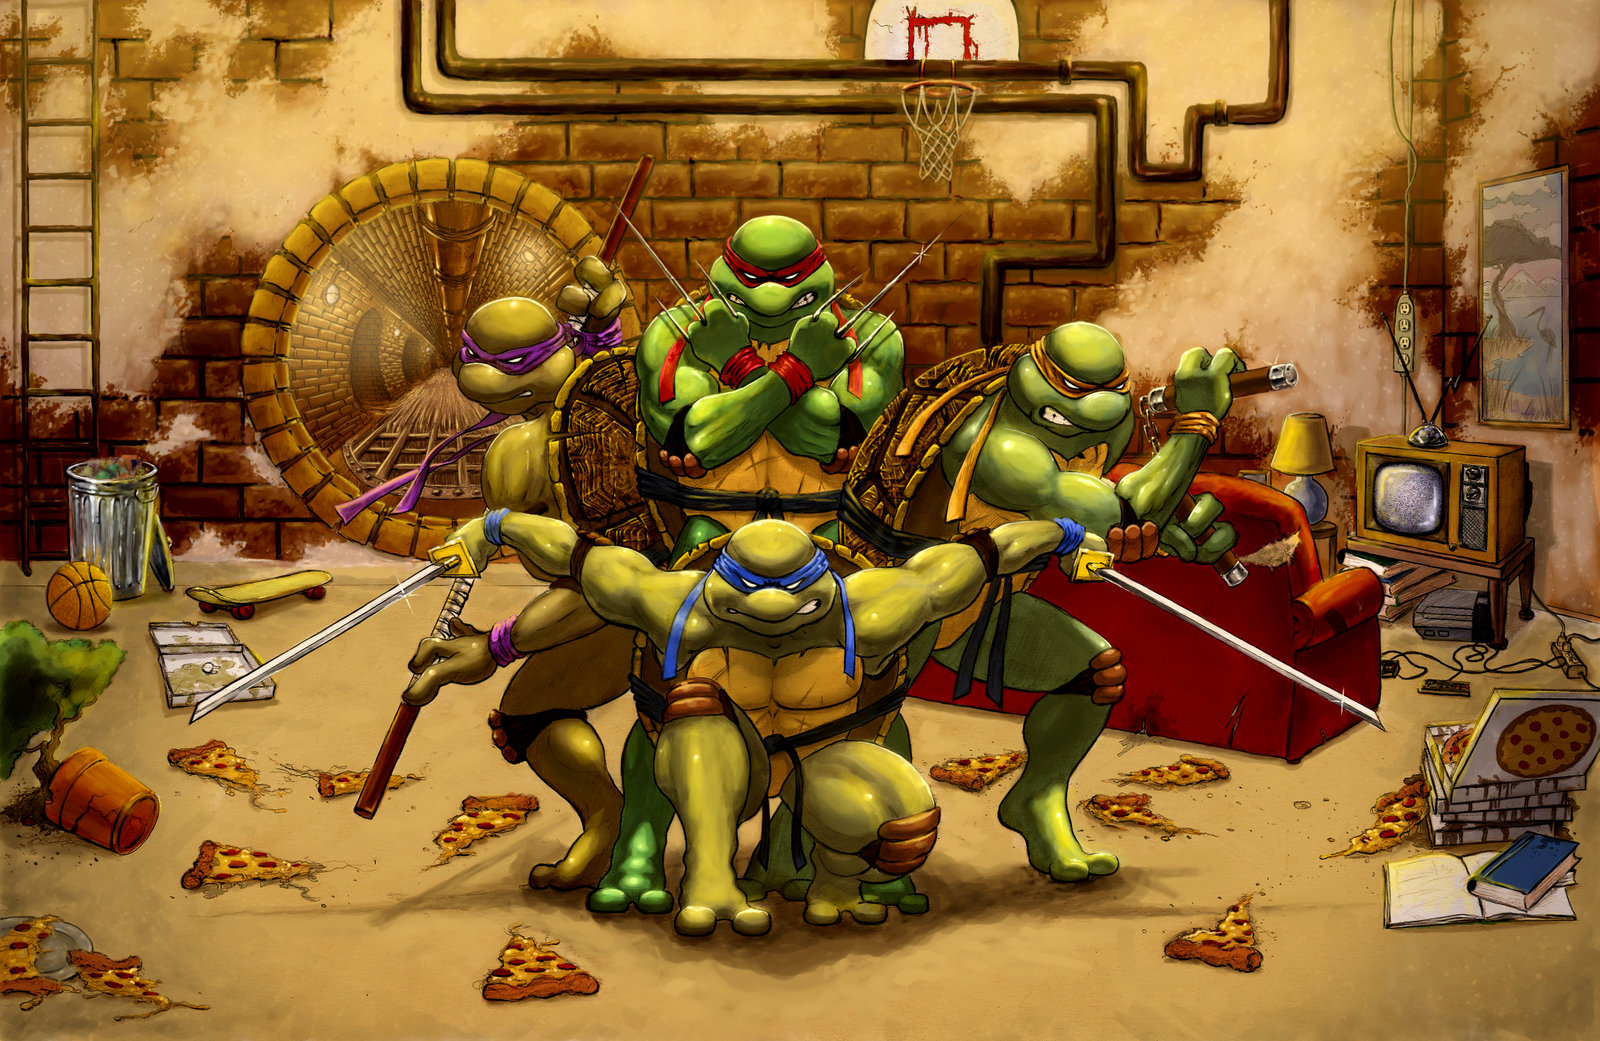 Teenage mutant ninja turtles wallpaper and background image comics tmnt michelangelo tmnt leonardo tmnt donatello tmnt raphael voltagebd Gallery